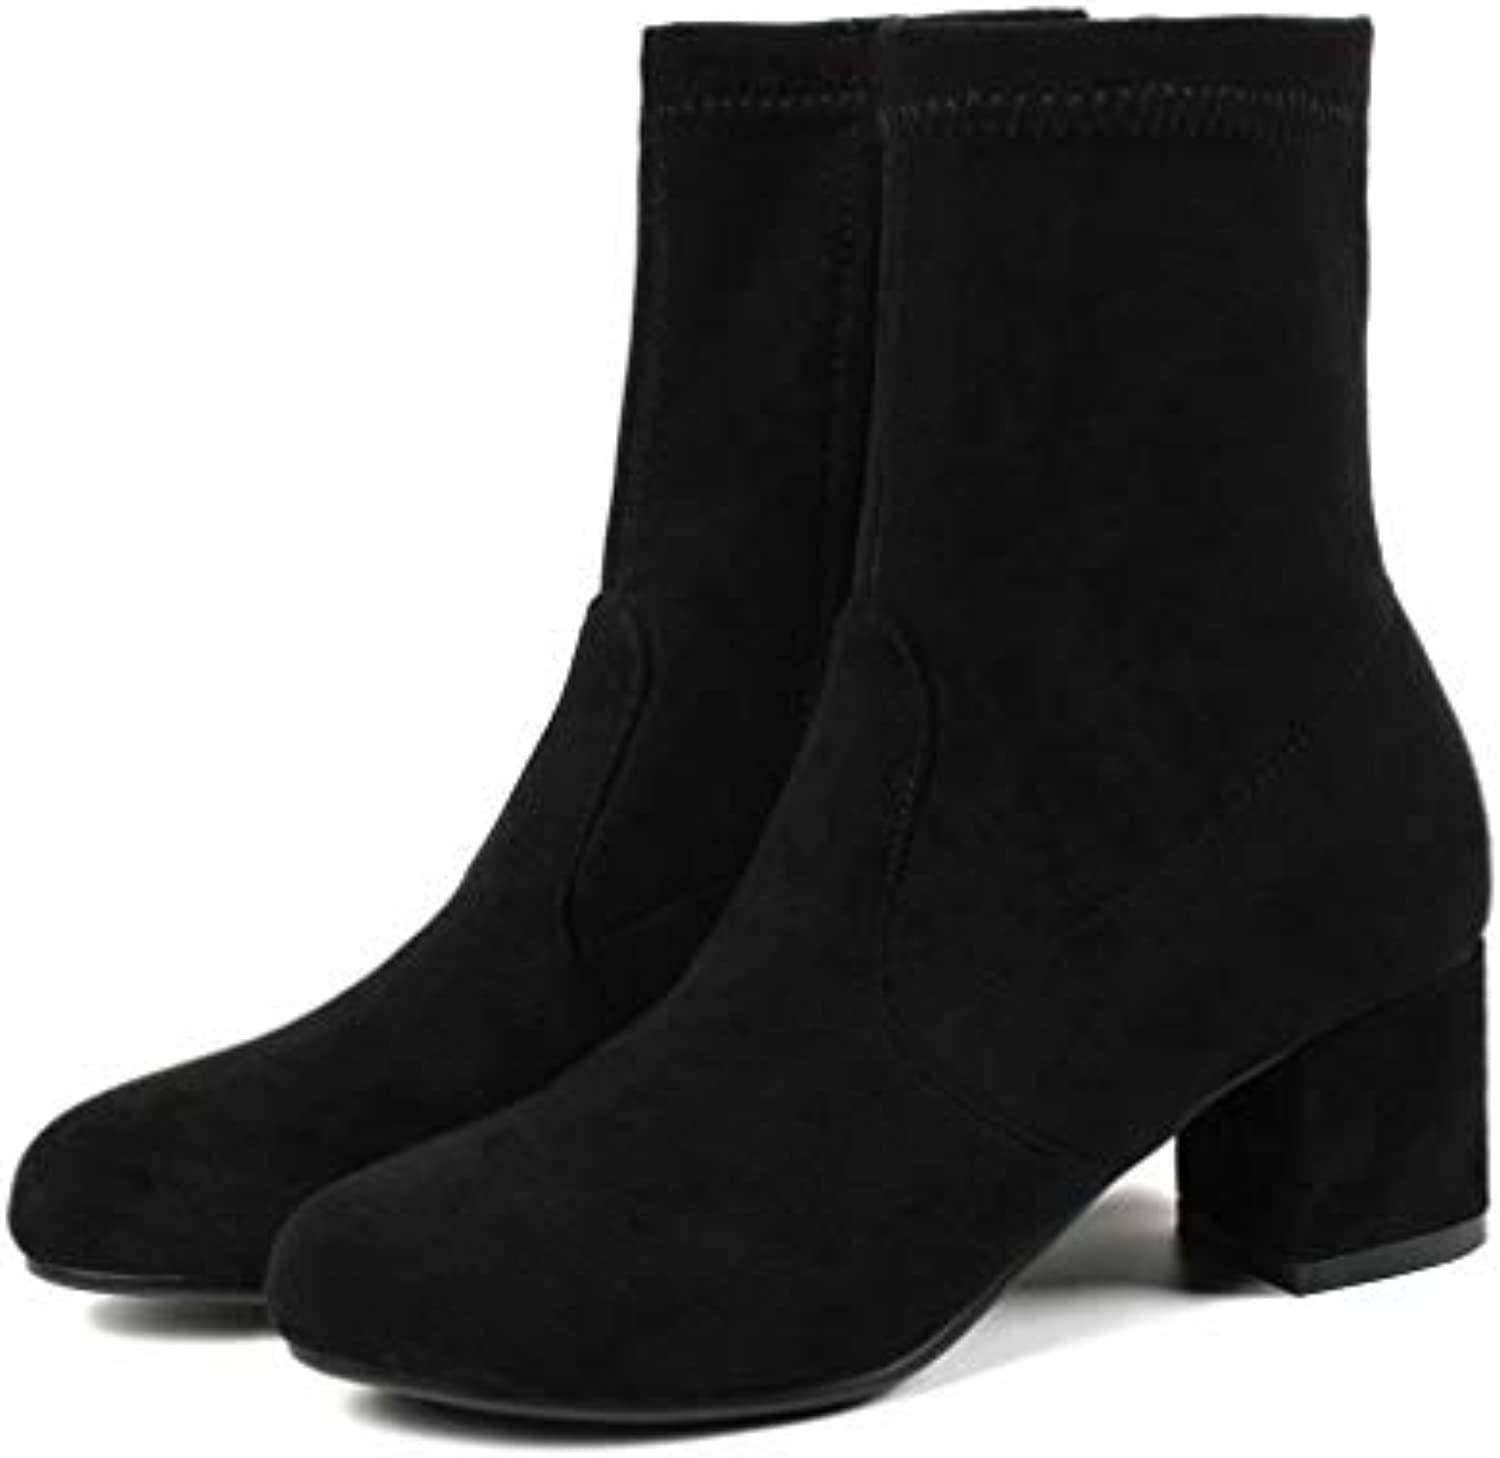 T-JULY Women shoes Round Toe Square High Heels Ankle Boots Synthetic Autumn Woman Boots Ankle Boots